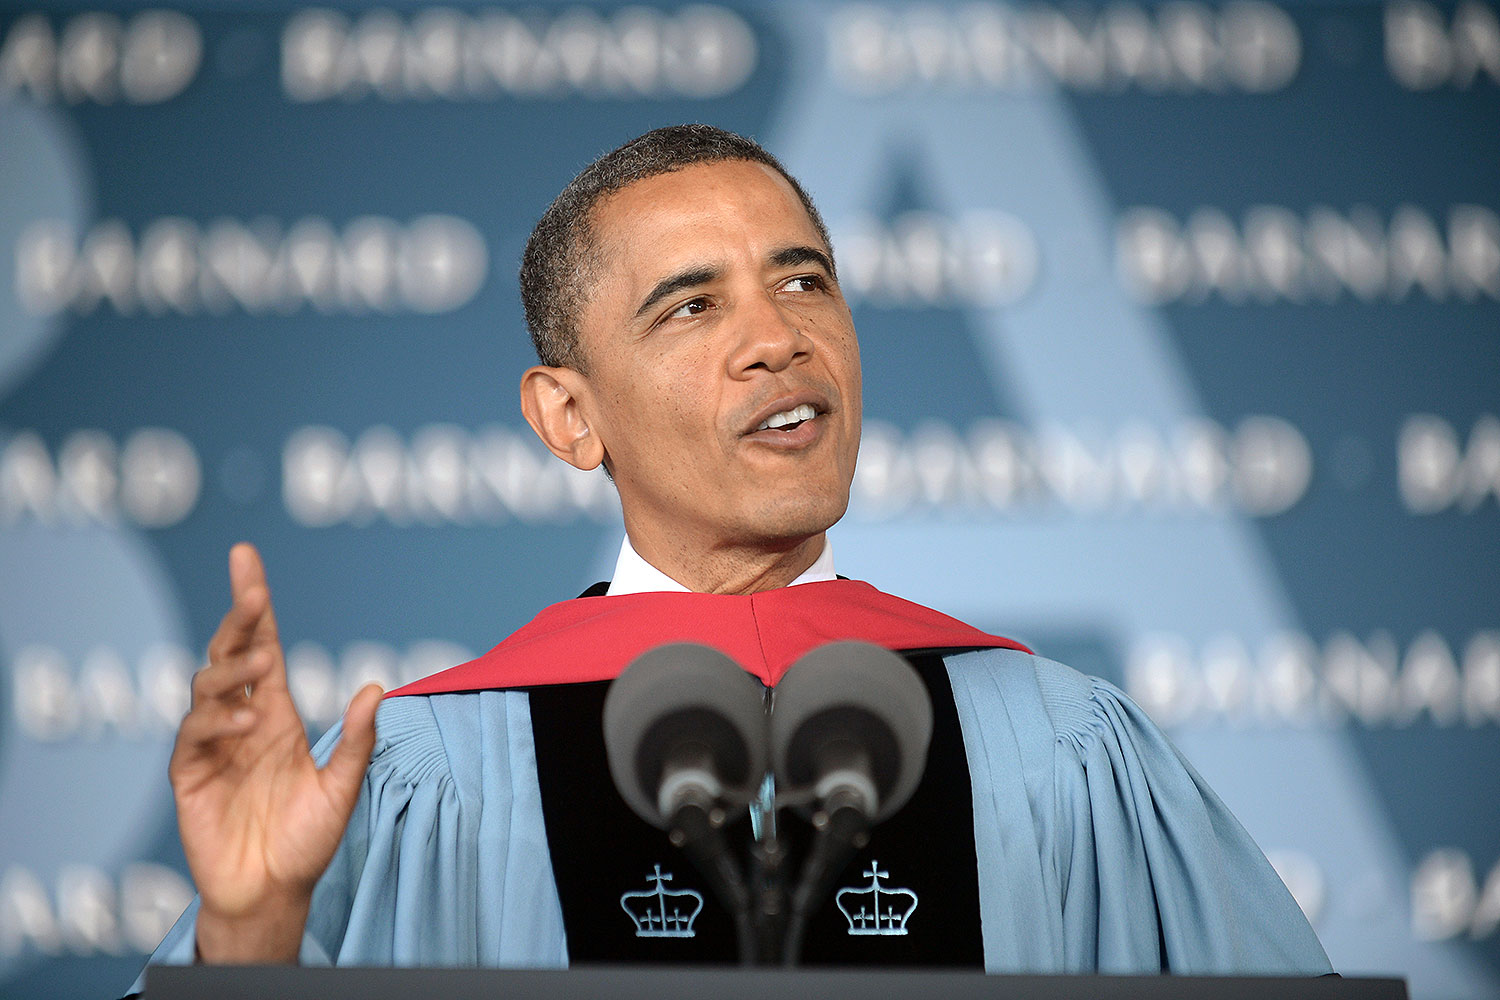 Obama commencement speech